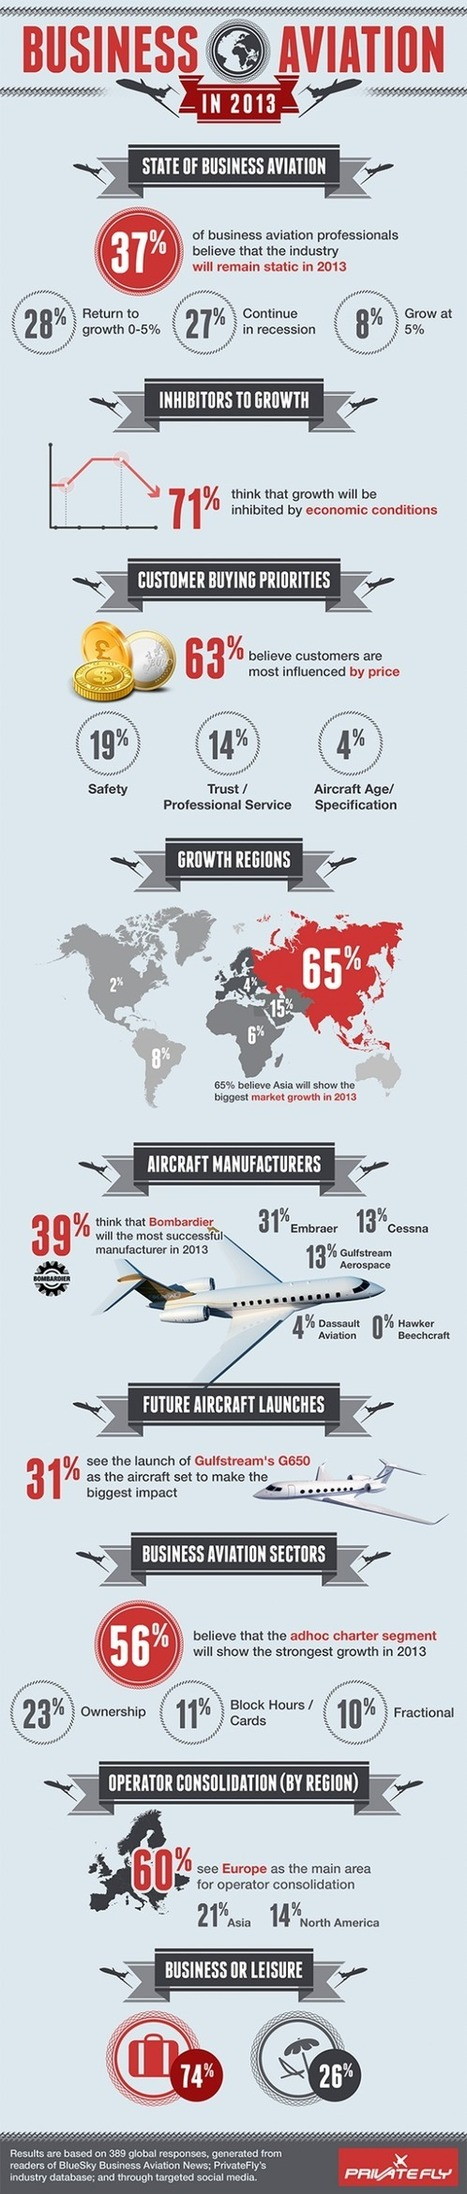 Business Aviation in 2013 [Infographic] — Intelligent Travel | Business Industry Infographics | Scoop.it